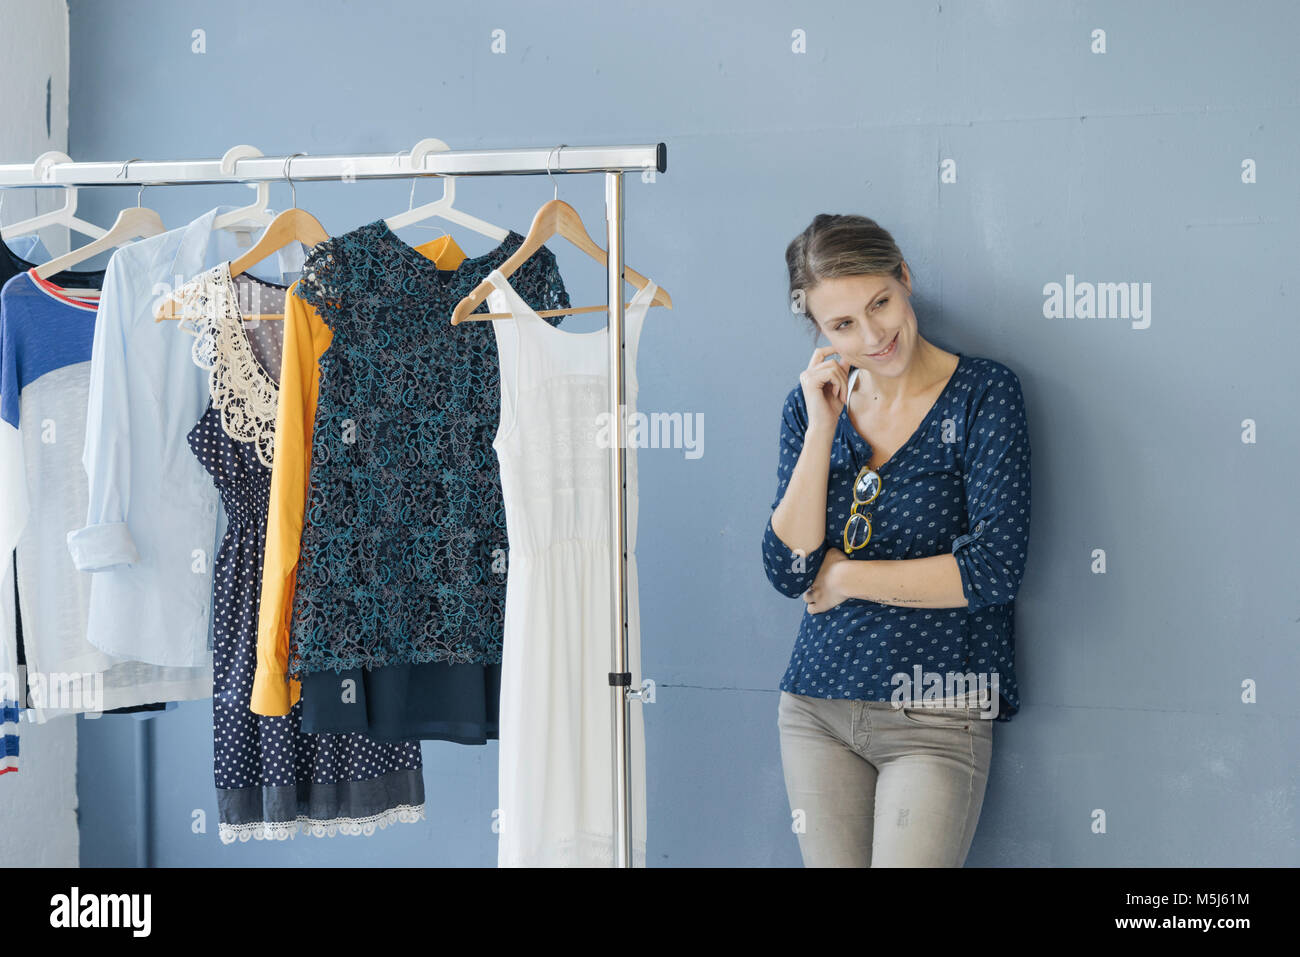 Portrait of smiling fashion designer in her studio leaning against wall - Stock Image